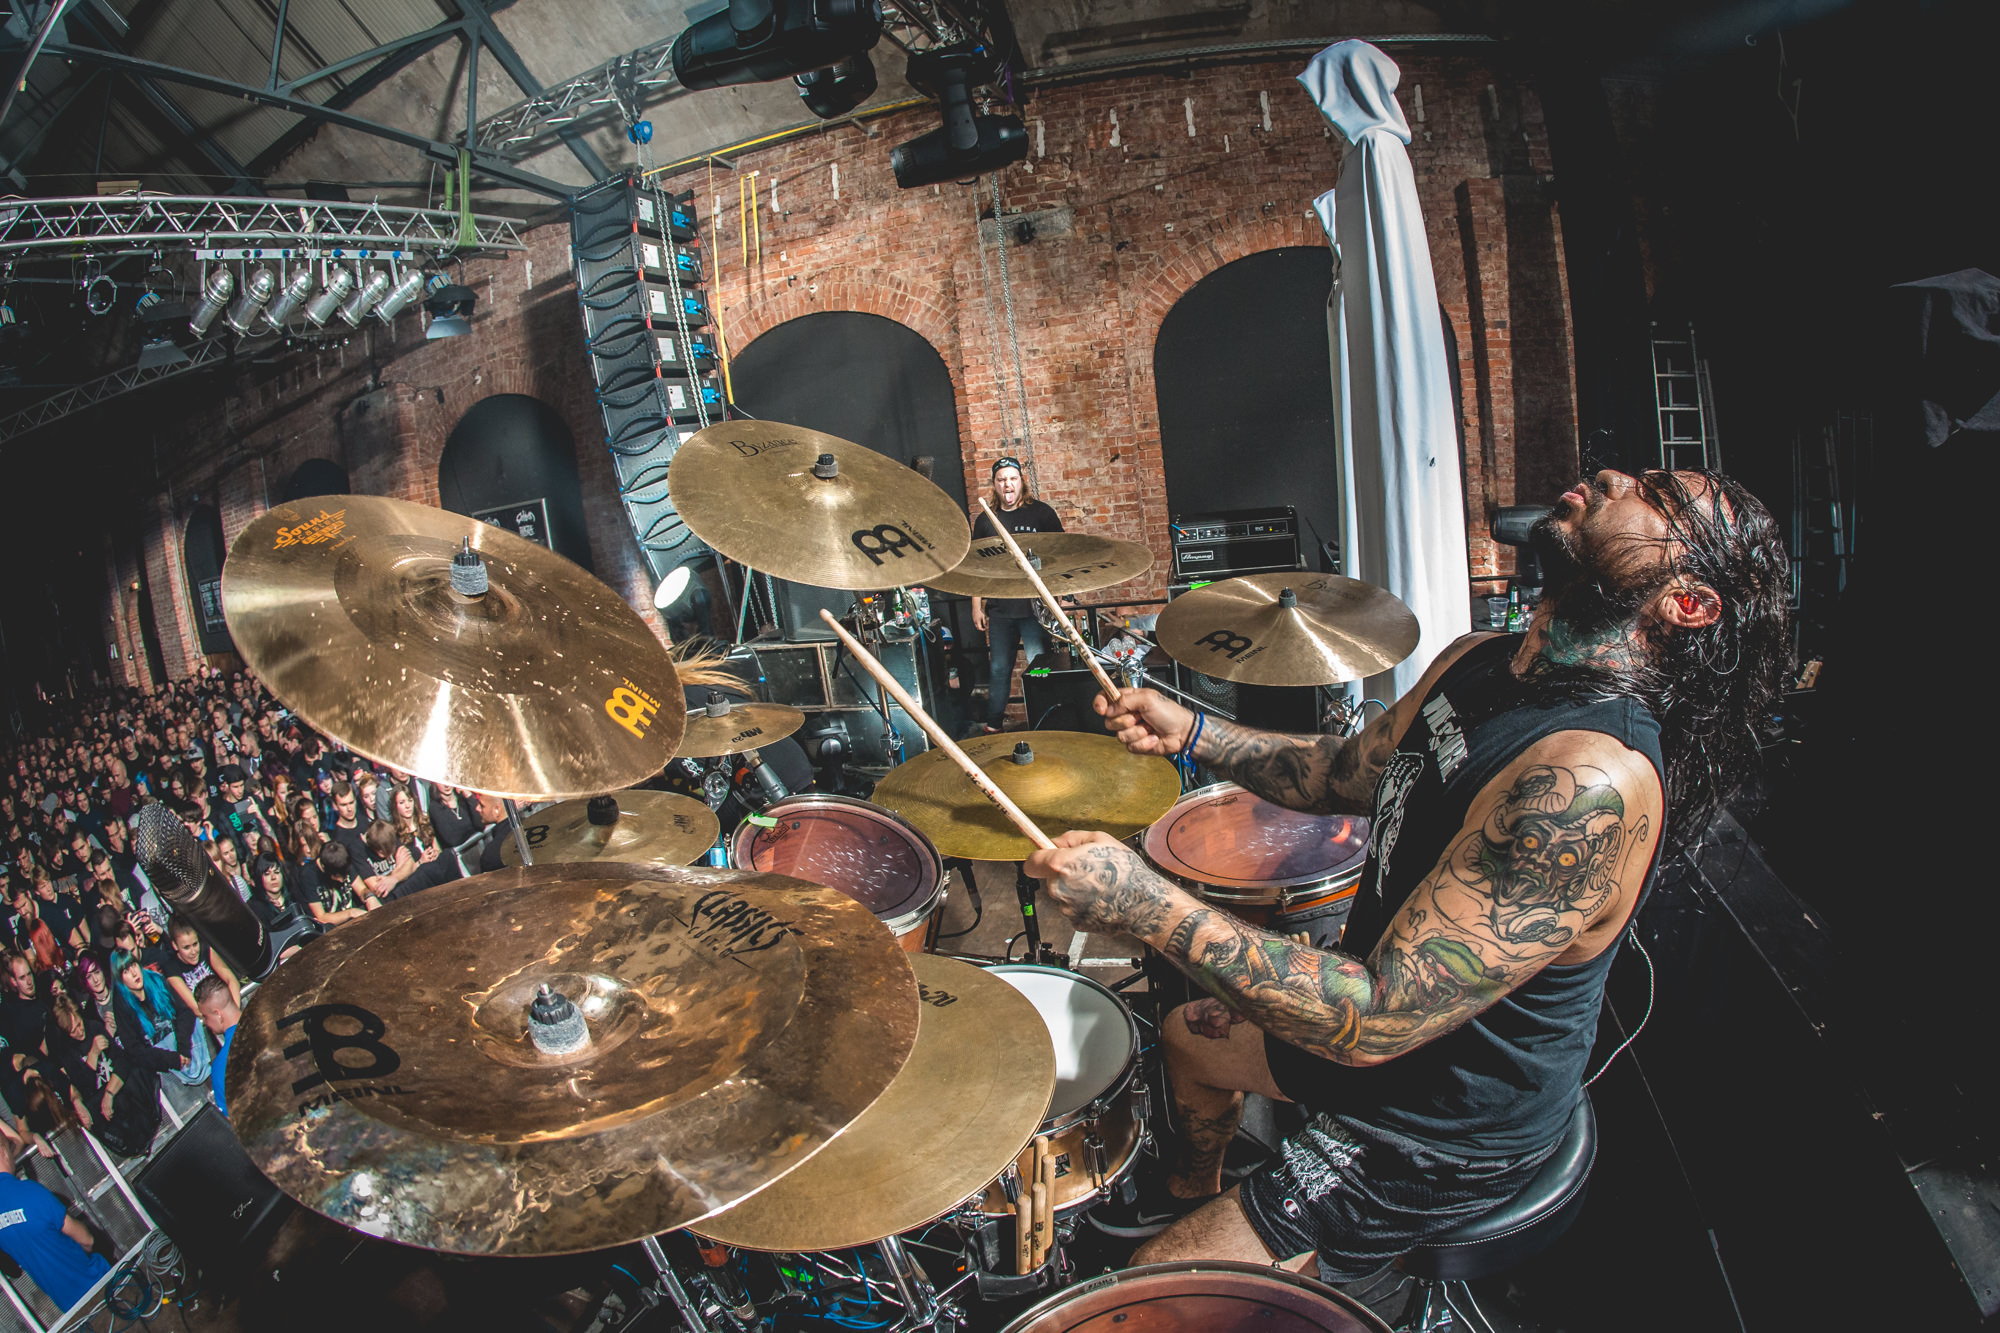 suicide-silence-dresden-festival-concert-event-music-photography.jpg